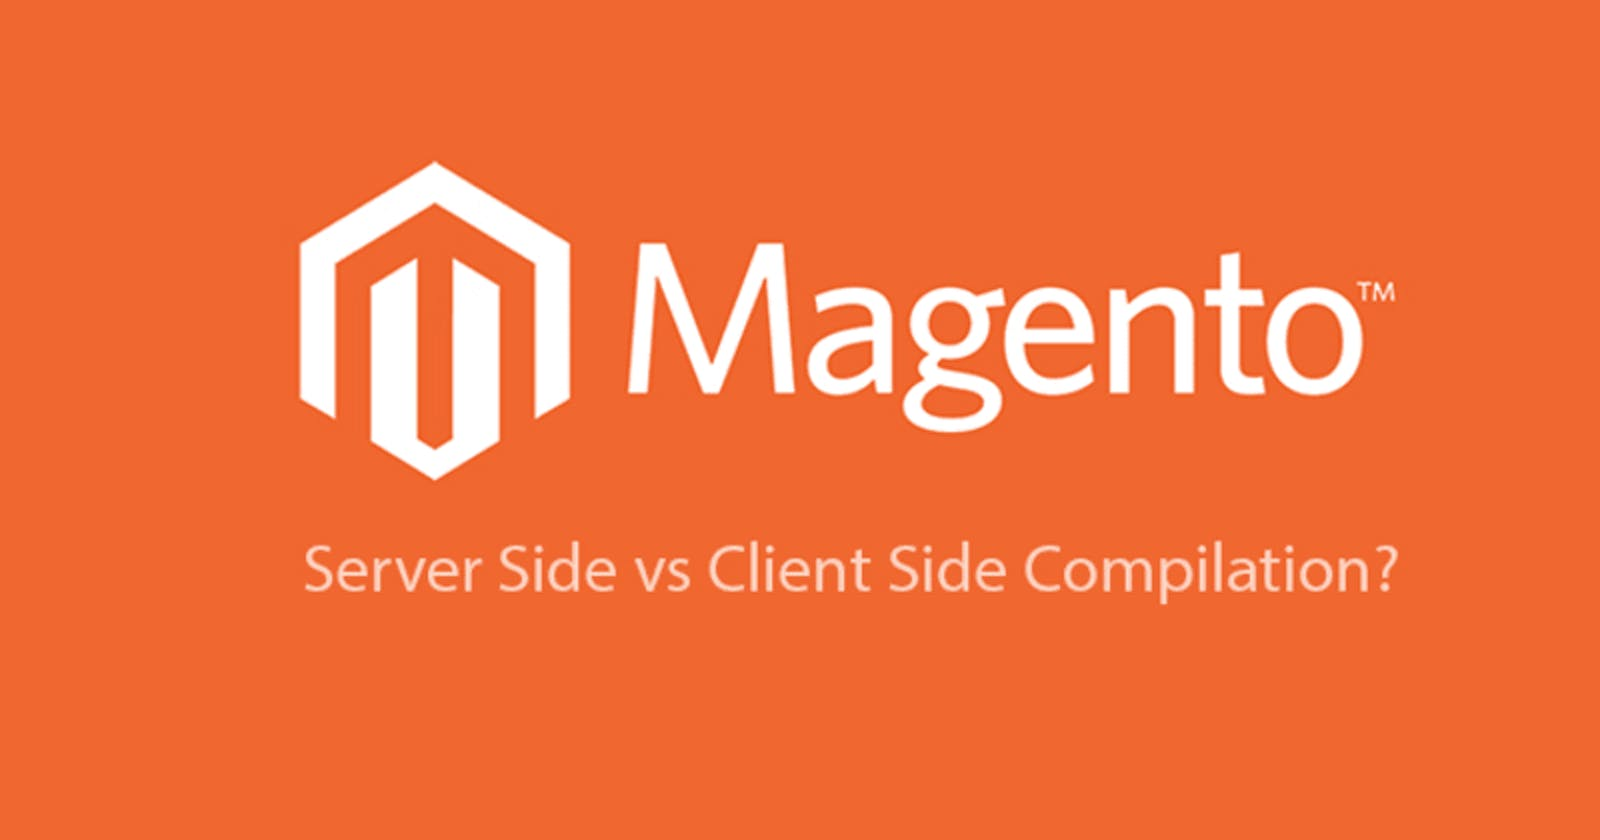 Magento 2 Compiling on server or client-side? (Pros and Cons)